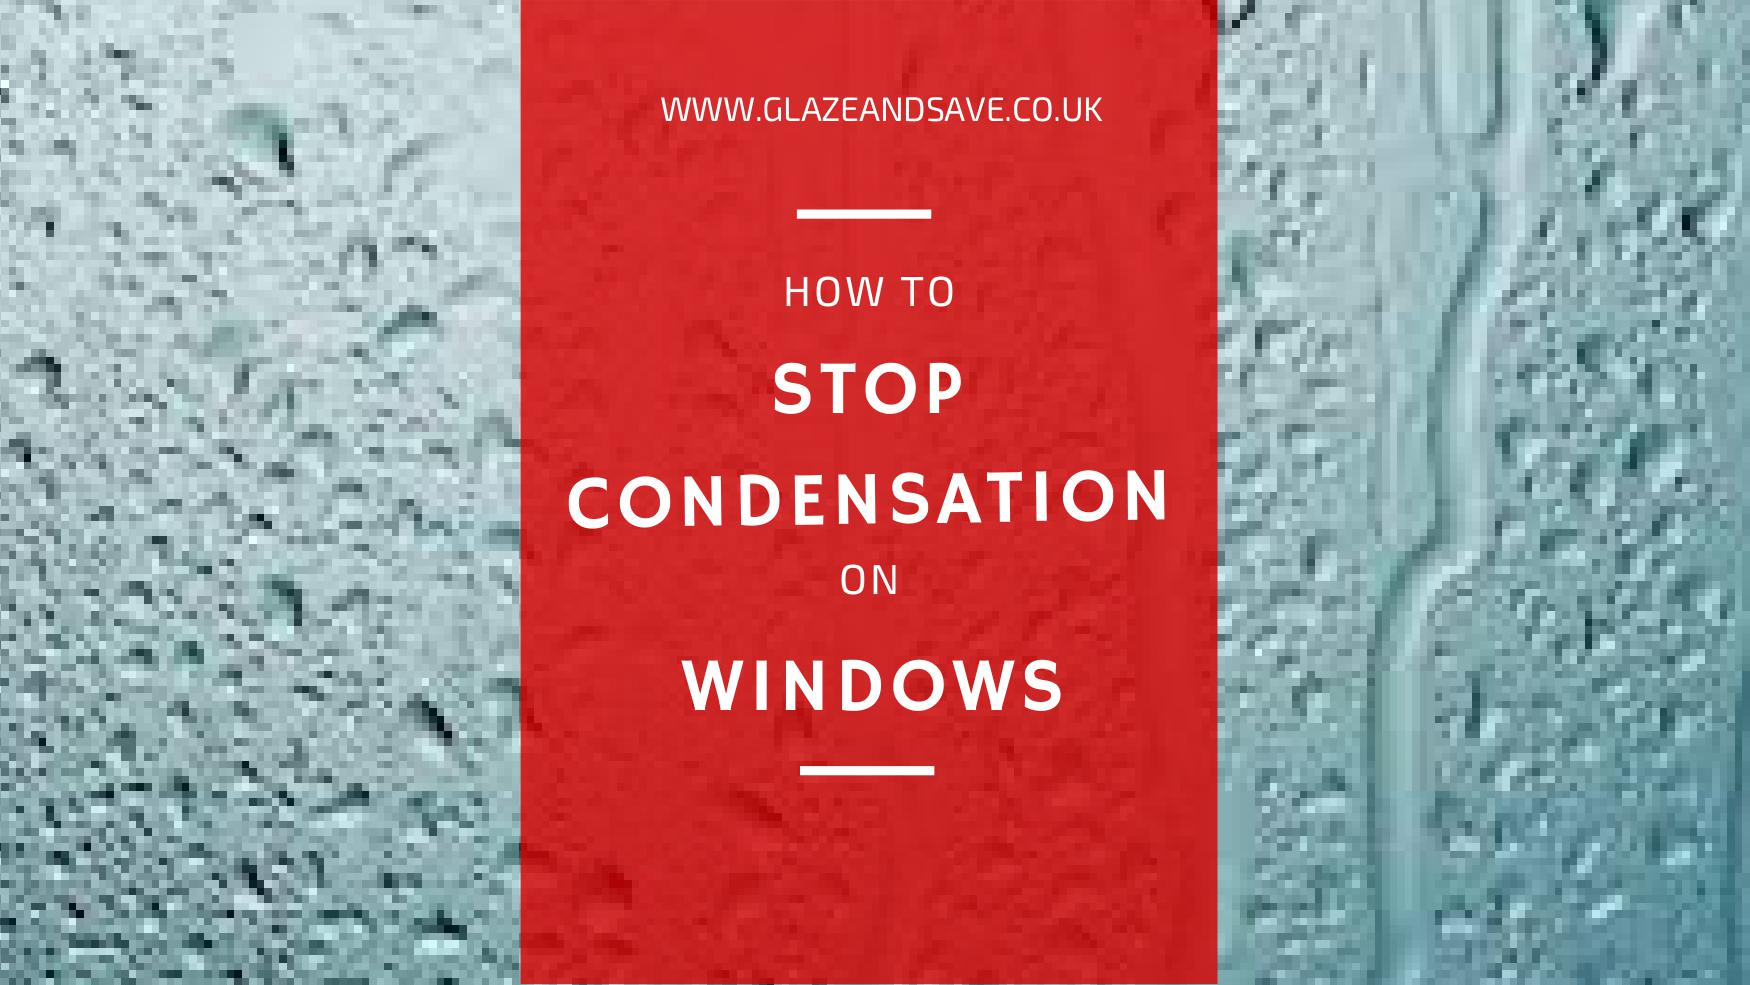 How to stop condensation on windows by Glaze & Save bespoke magnetic secondary glazing in Perth, UK. We eradicate condensation from your windows.